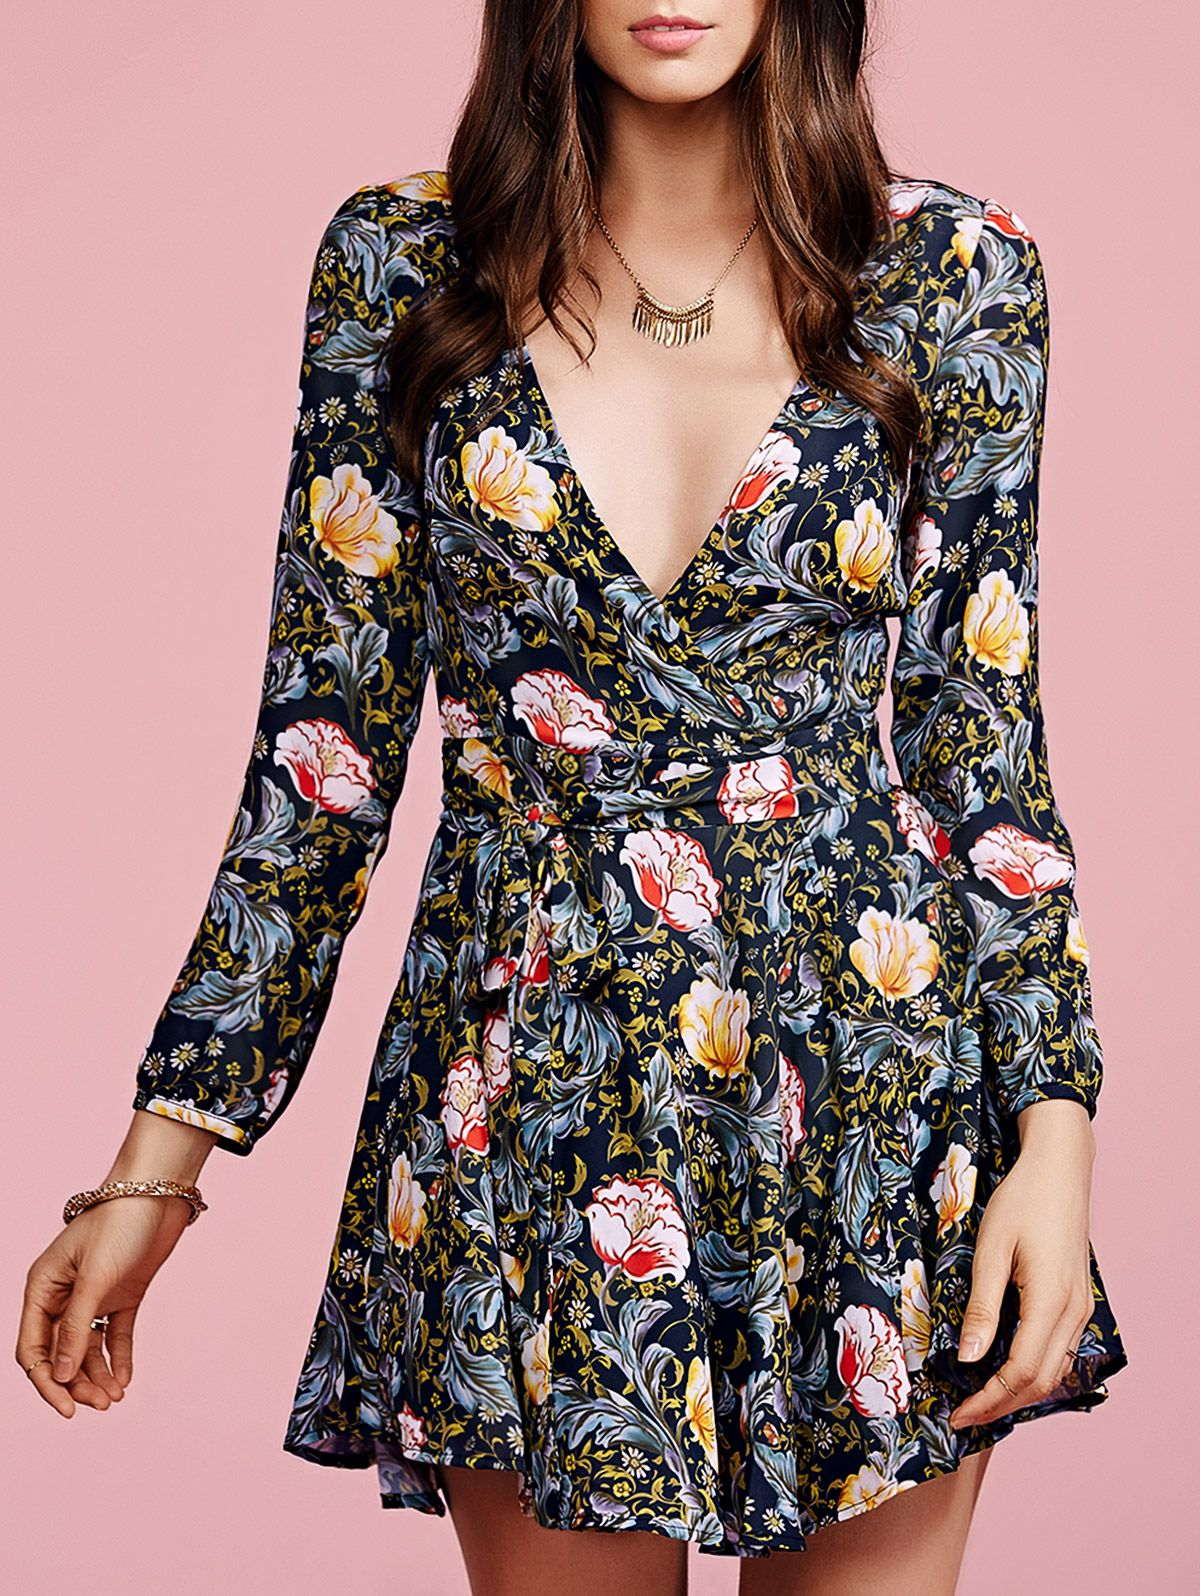 Crossover collar floral dress crossover floral and sleeved dress